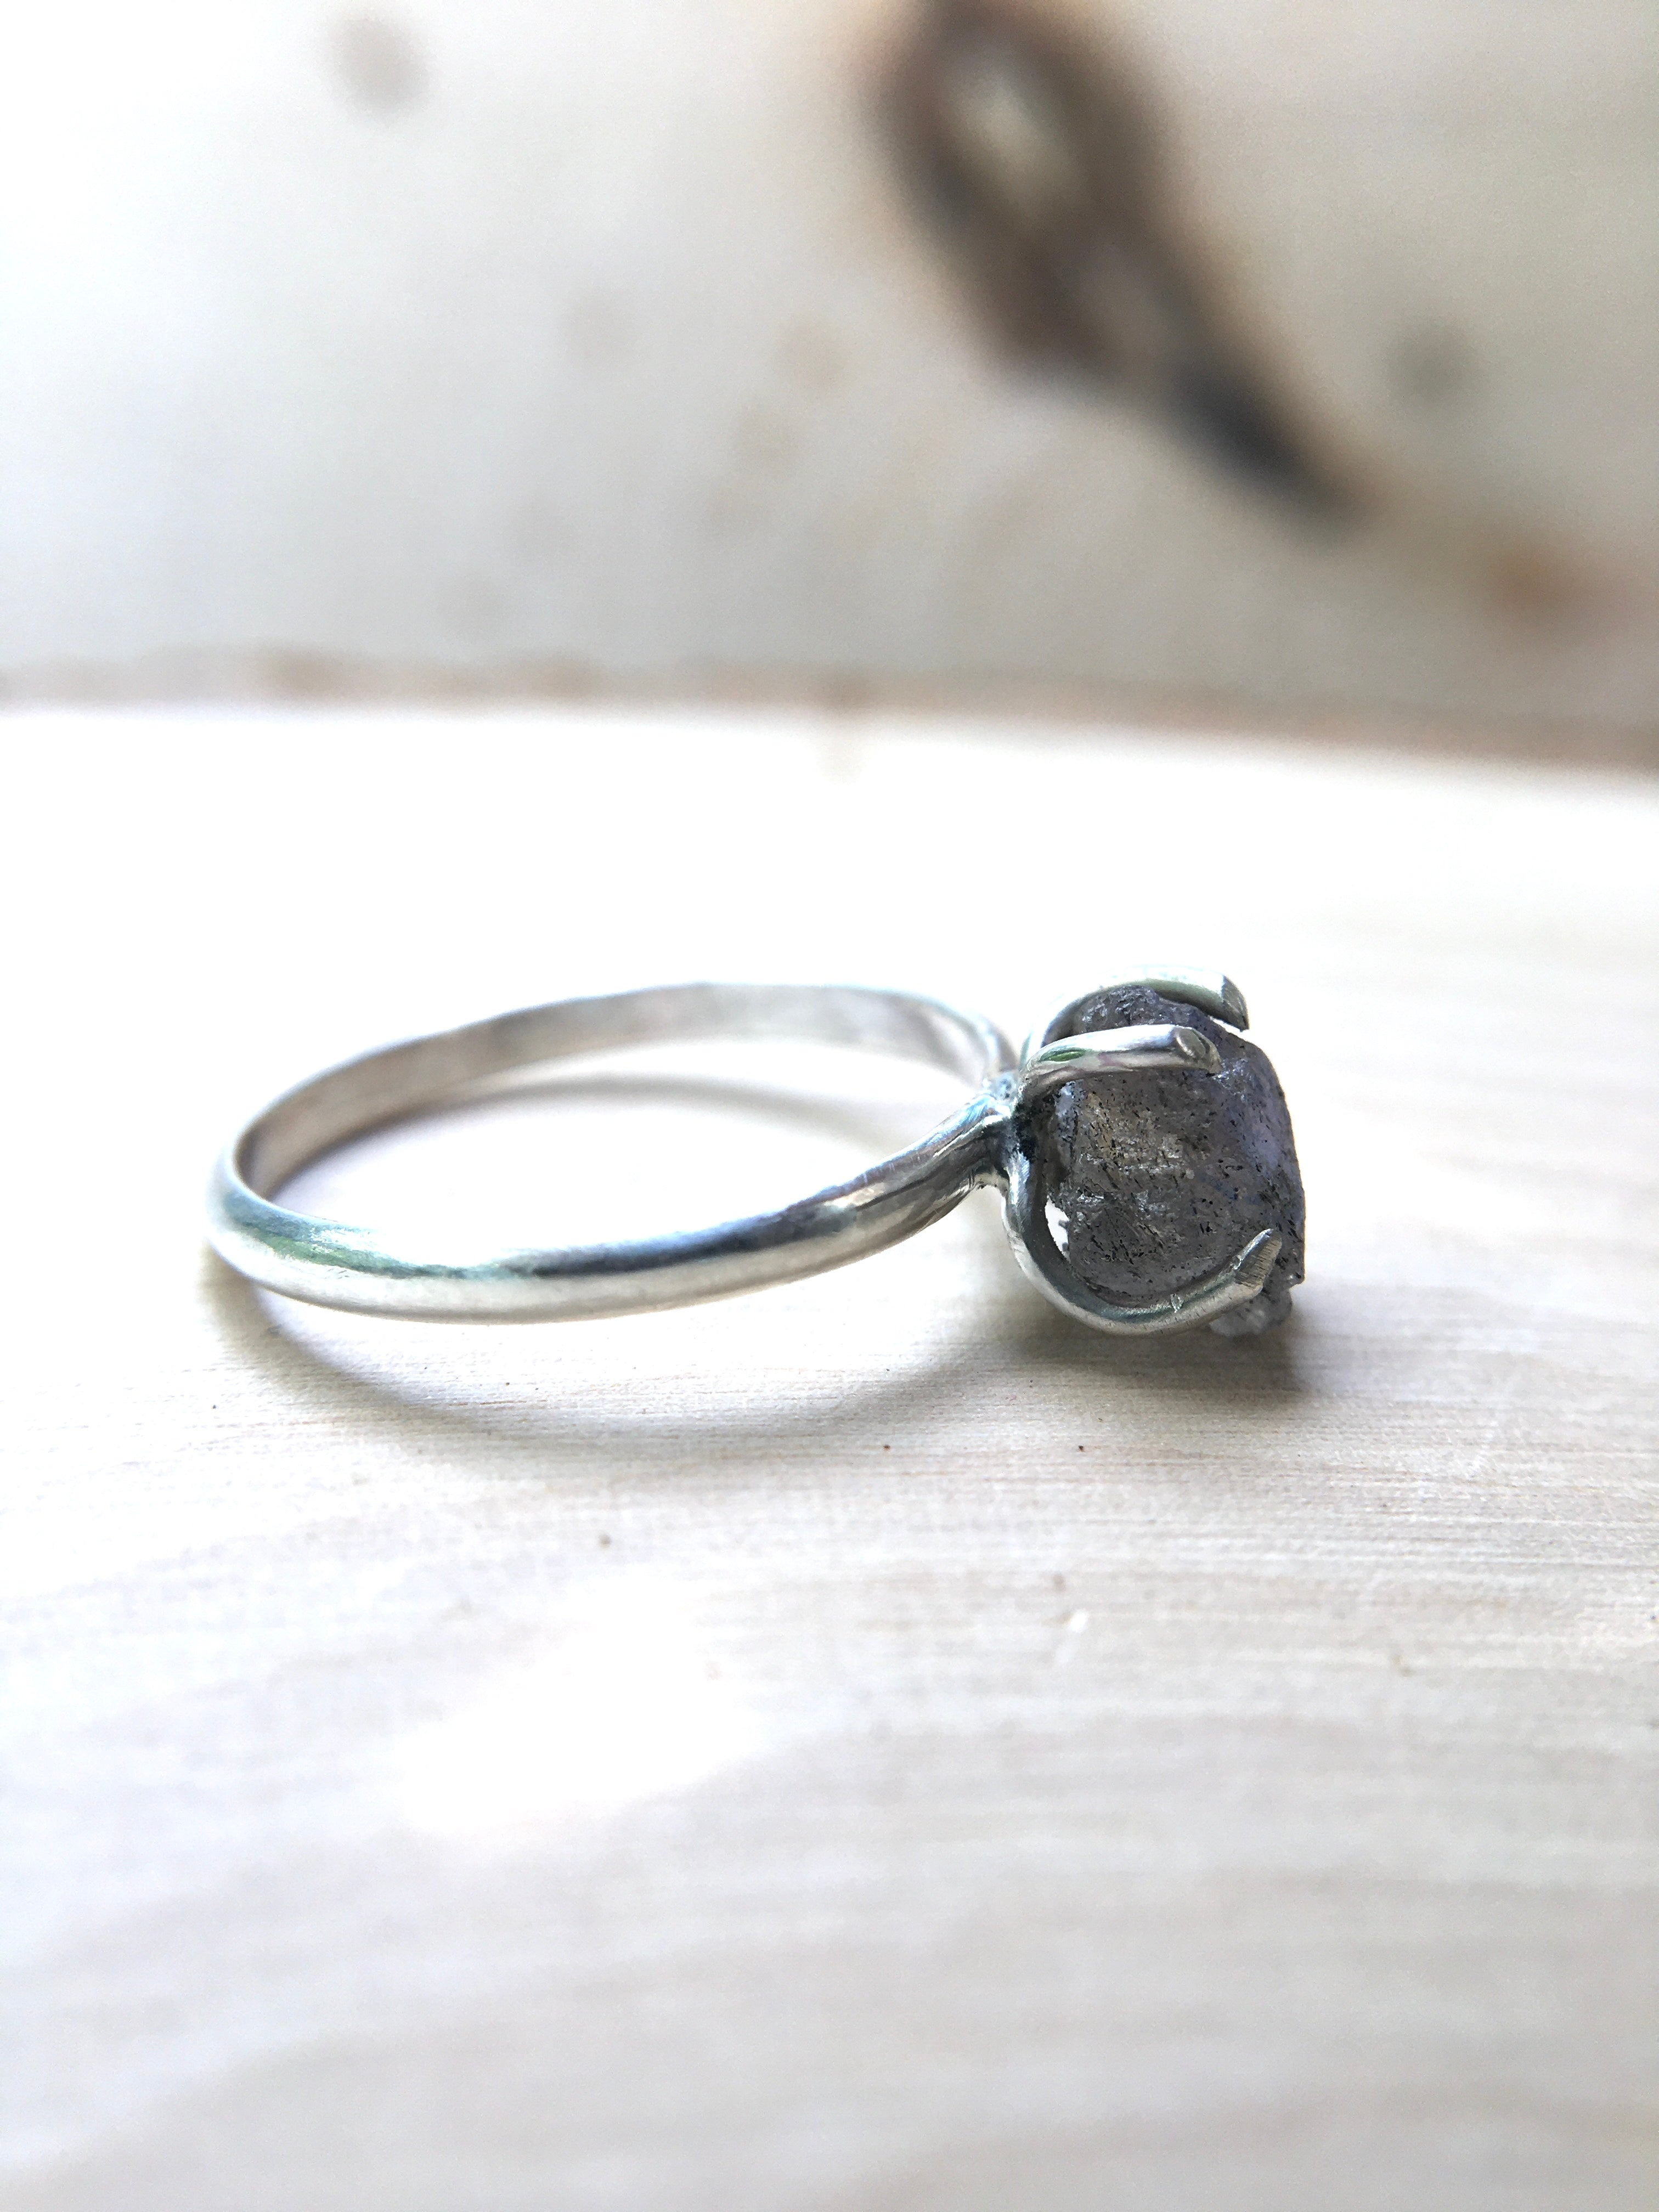 Chip of Dragon Heart Raw Labradorite Ring - Silver Lily Studio